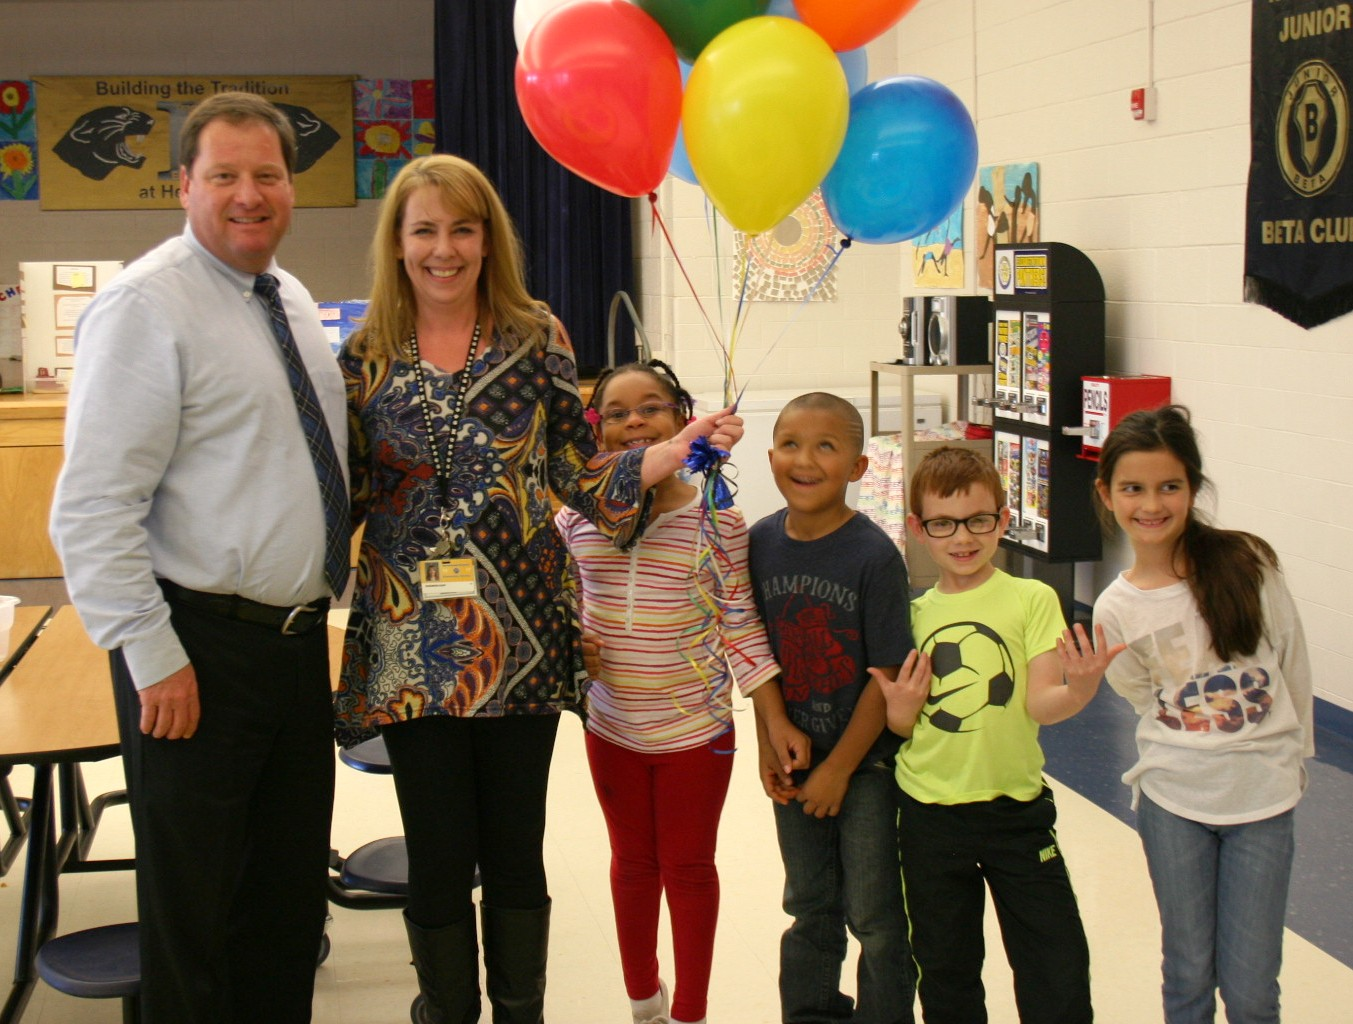 Superintendent Jon Ballard with Shannon Duff and students